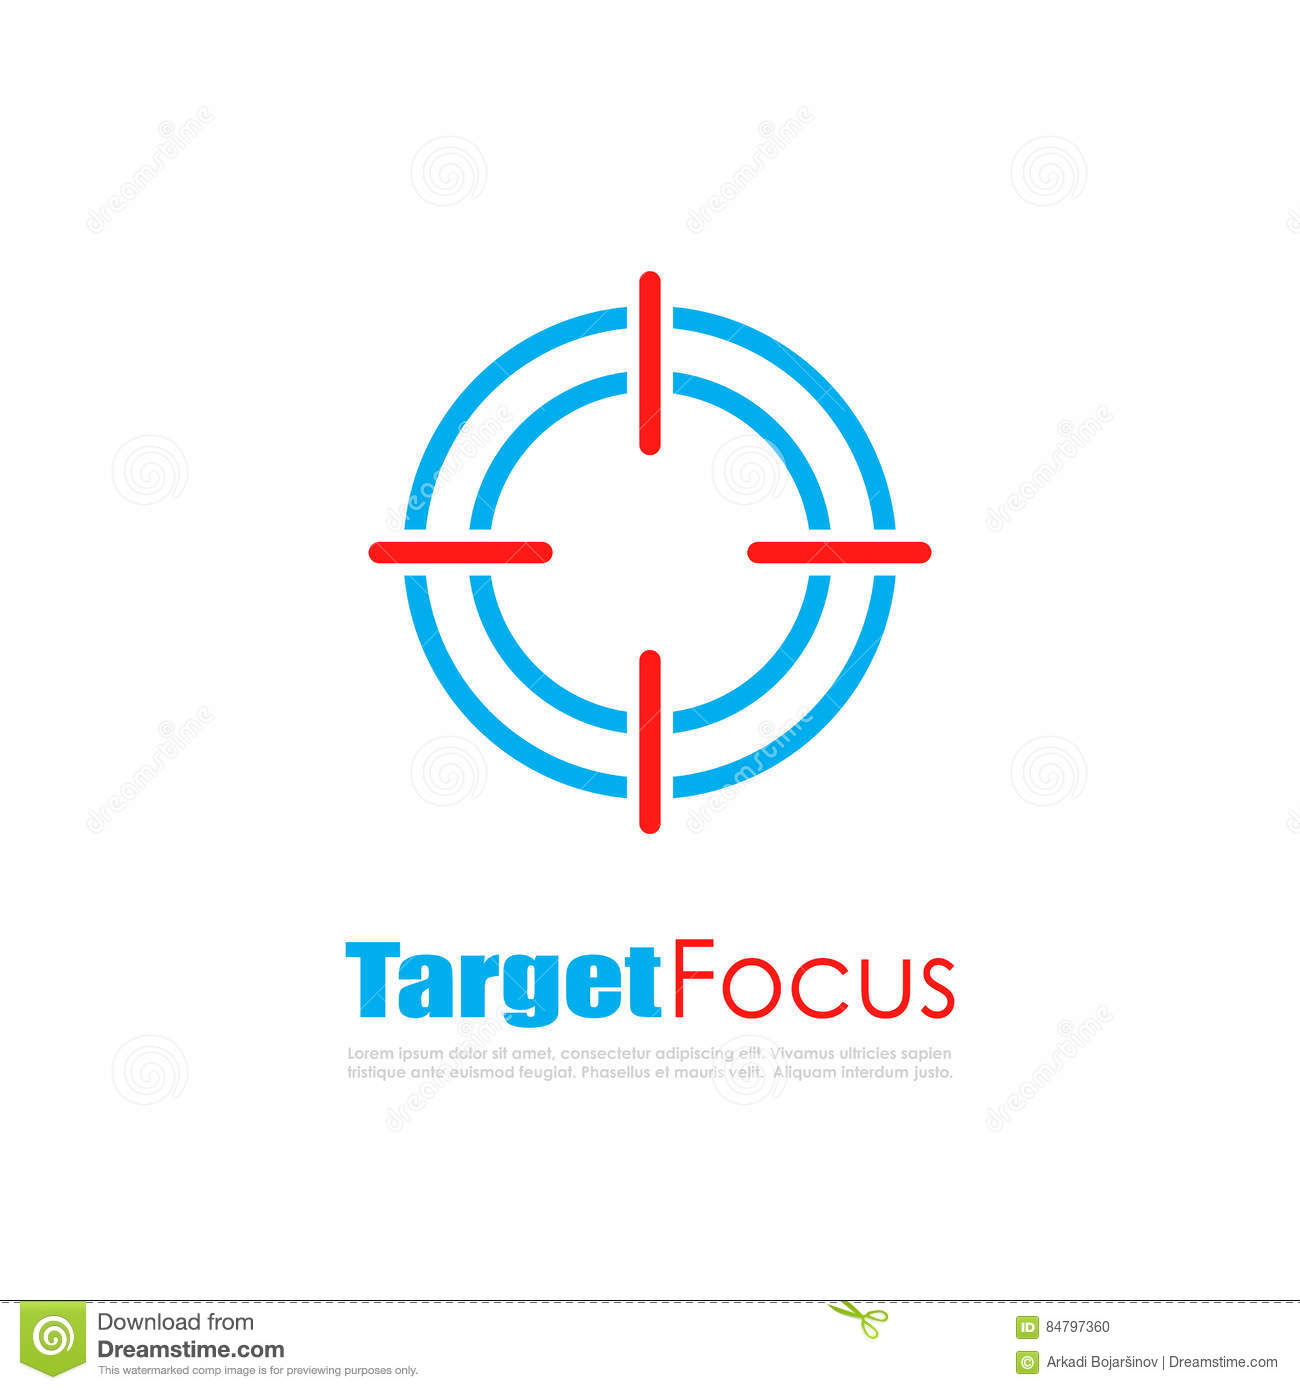 Target focus abstract logo